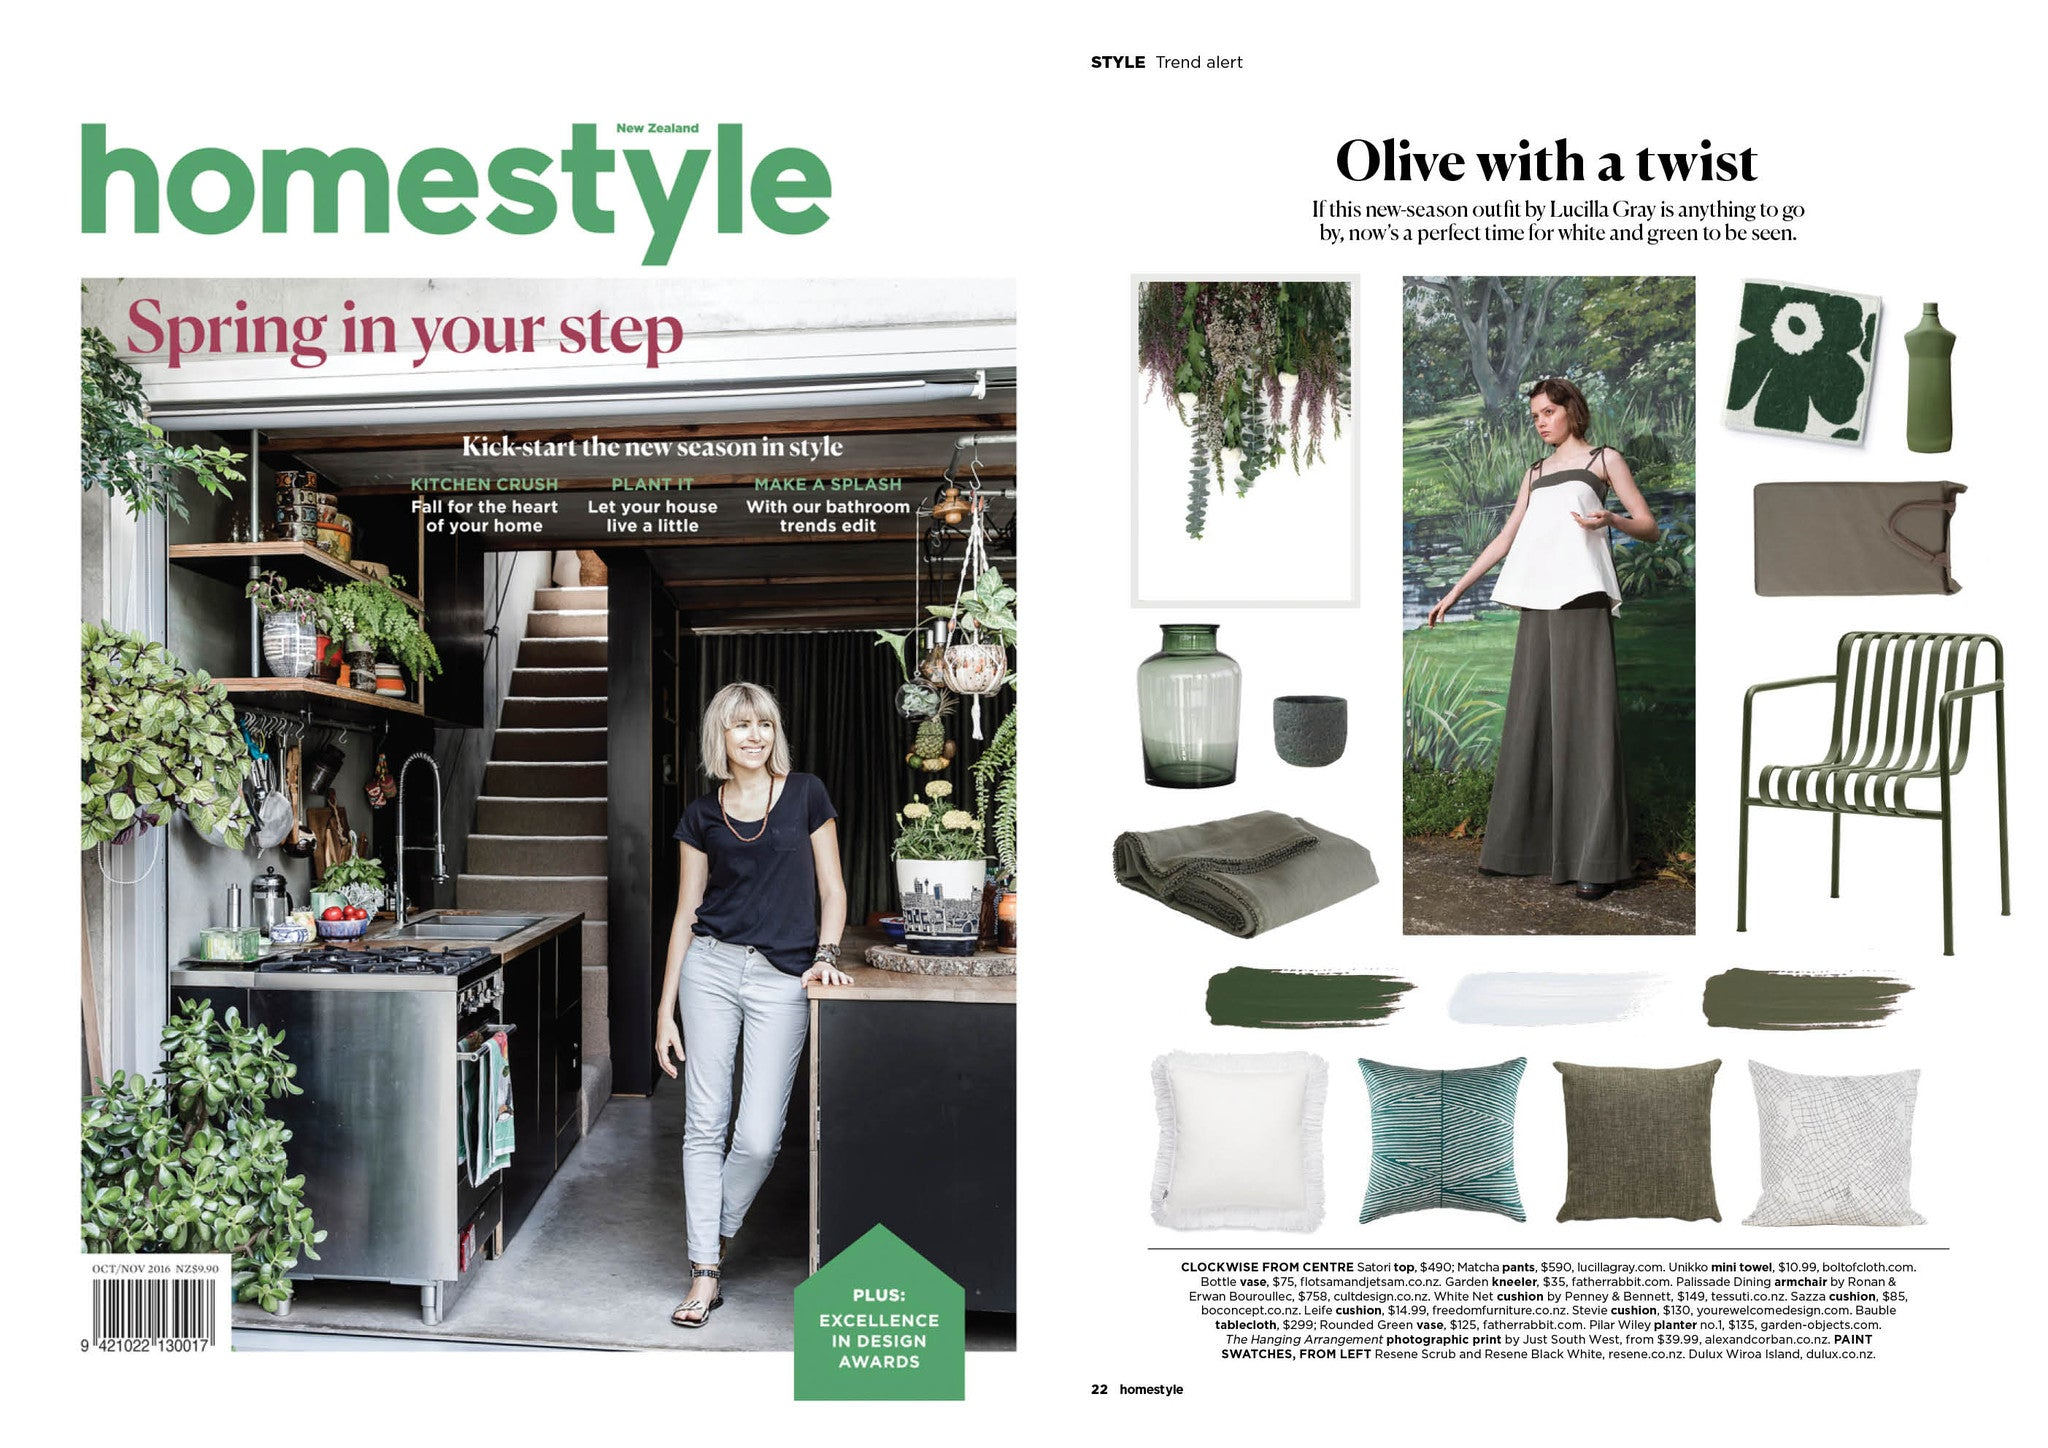 TREND ALERT - HOMESTYLE MAGAZINE OCT/NOV 2016